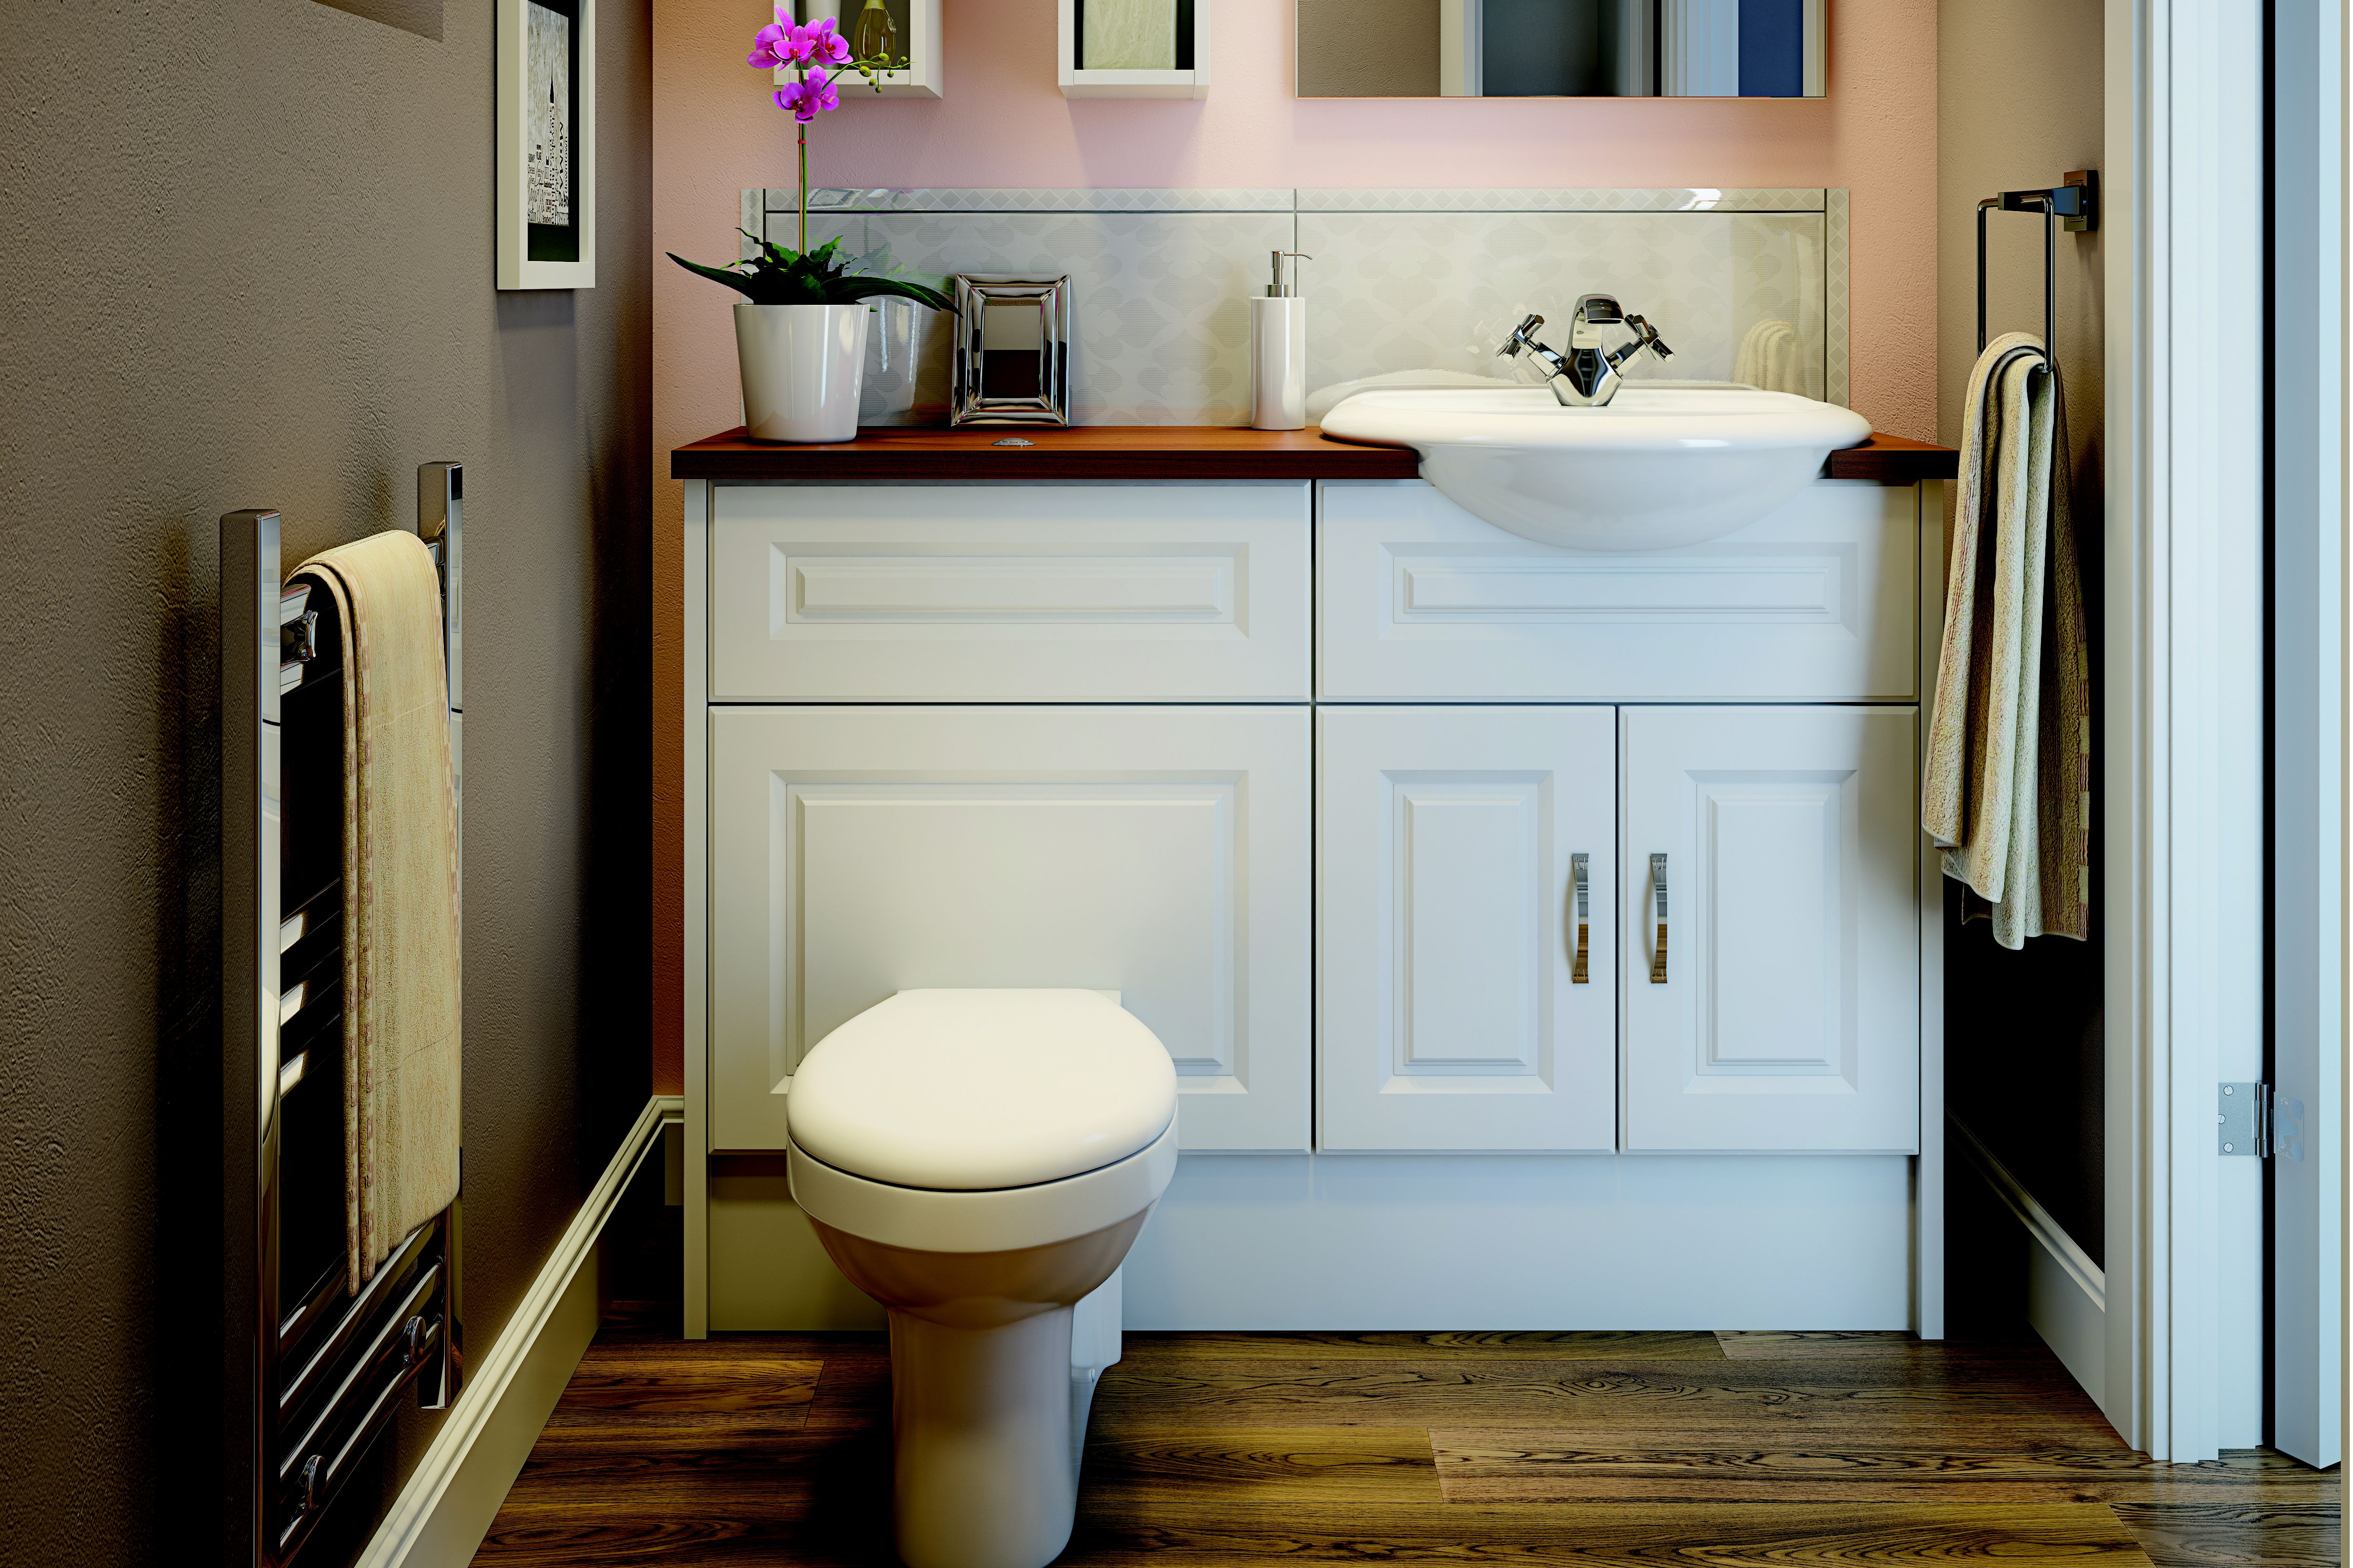 B And Q Bathroom Design Pleasing B&q Bathroom Cabinet Memsaheb Decorating  Inspiration